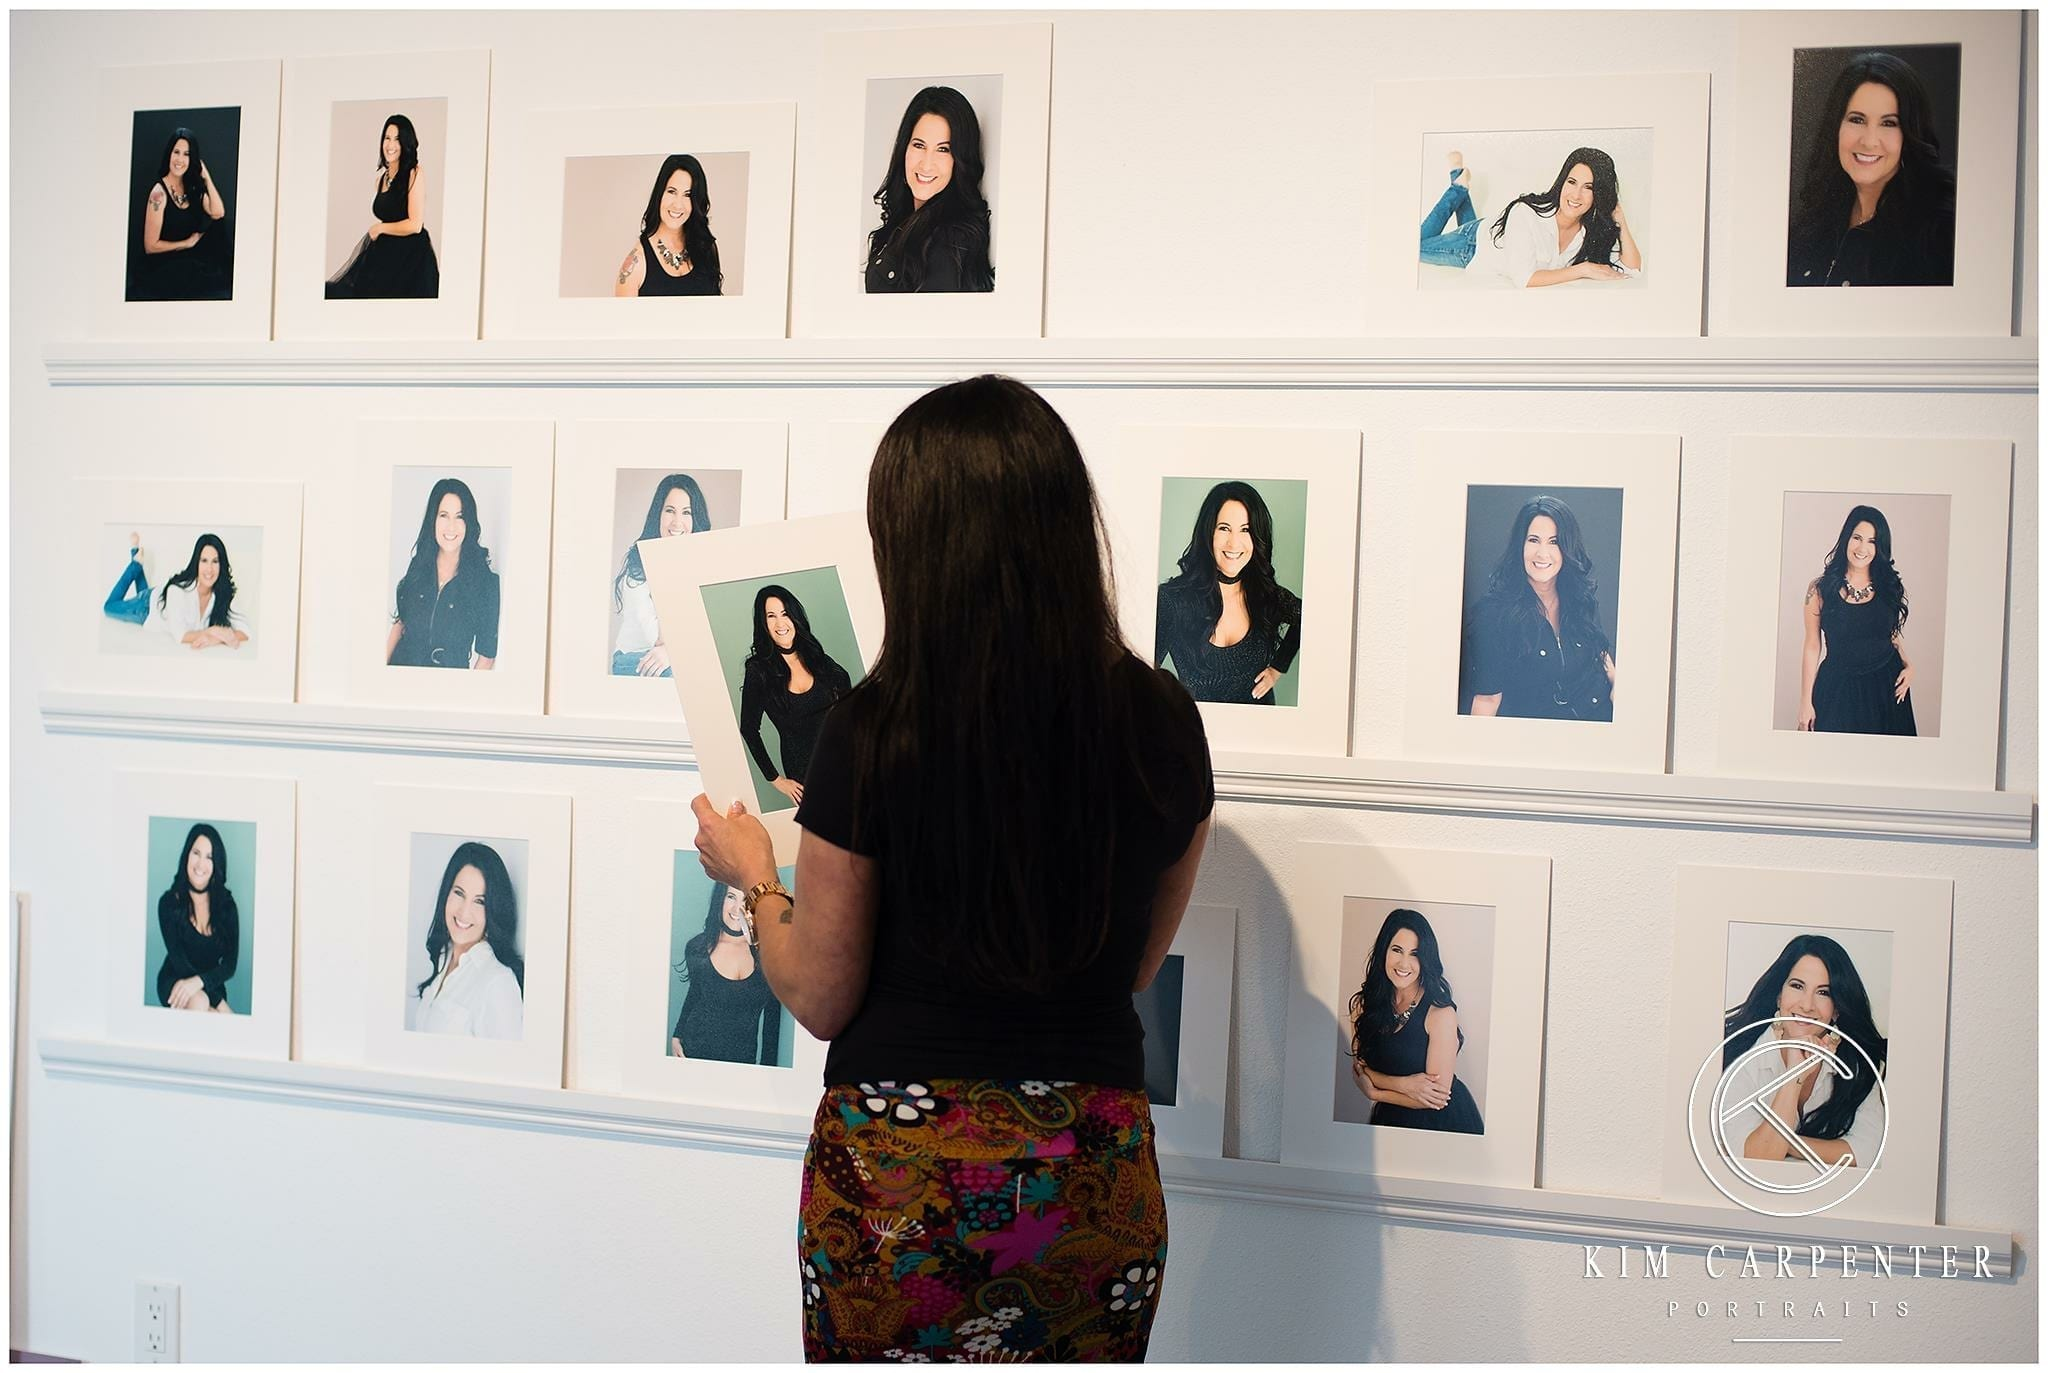 A woman standing and looking at personal headshots on shelves.